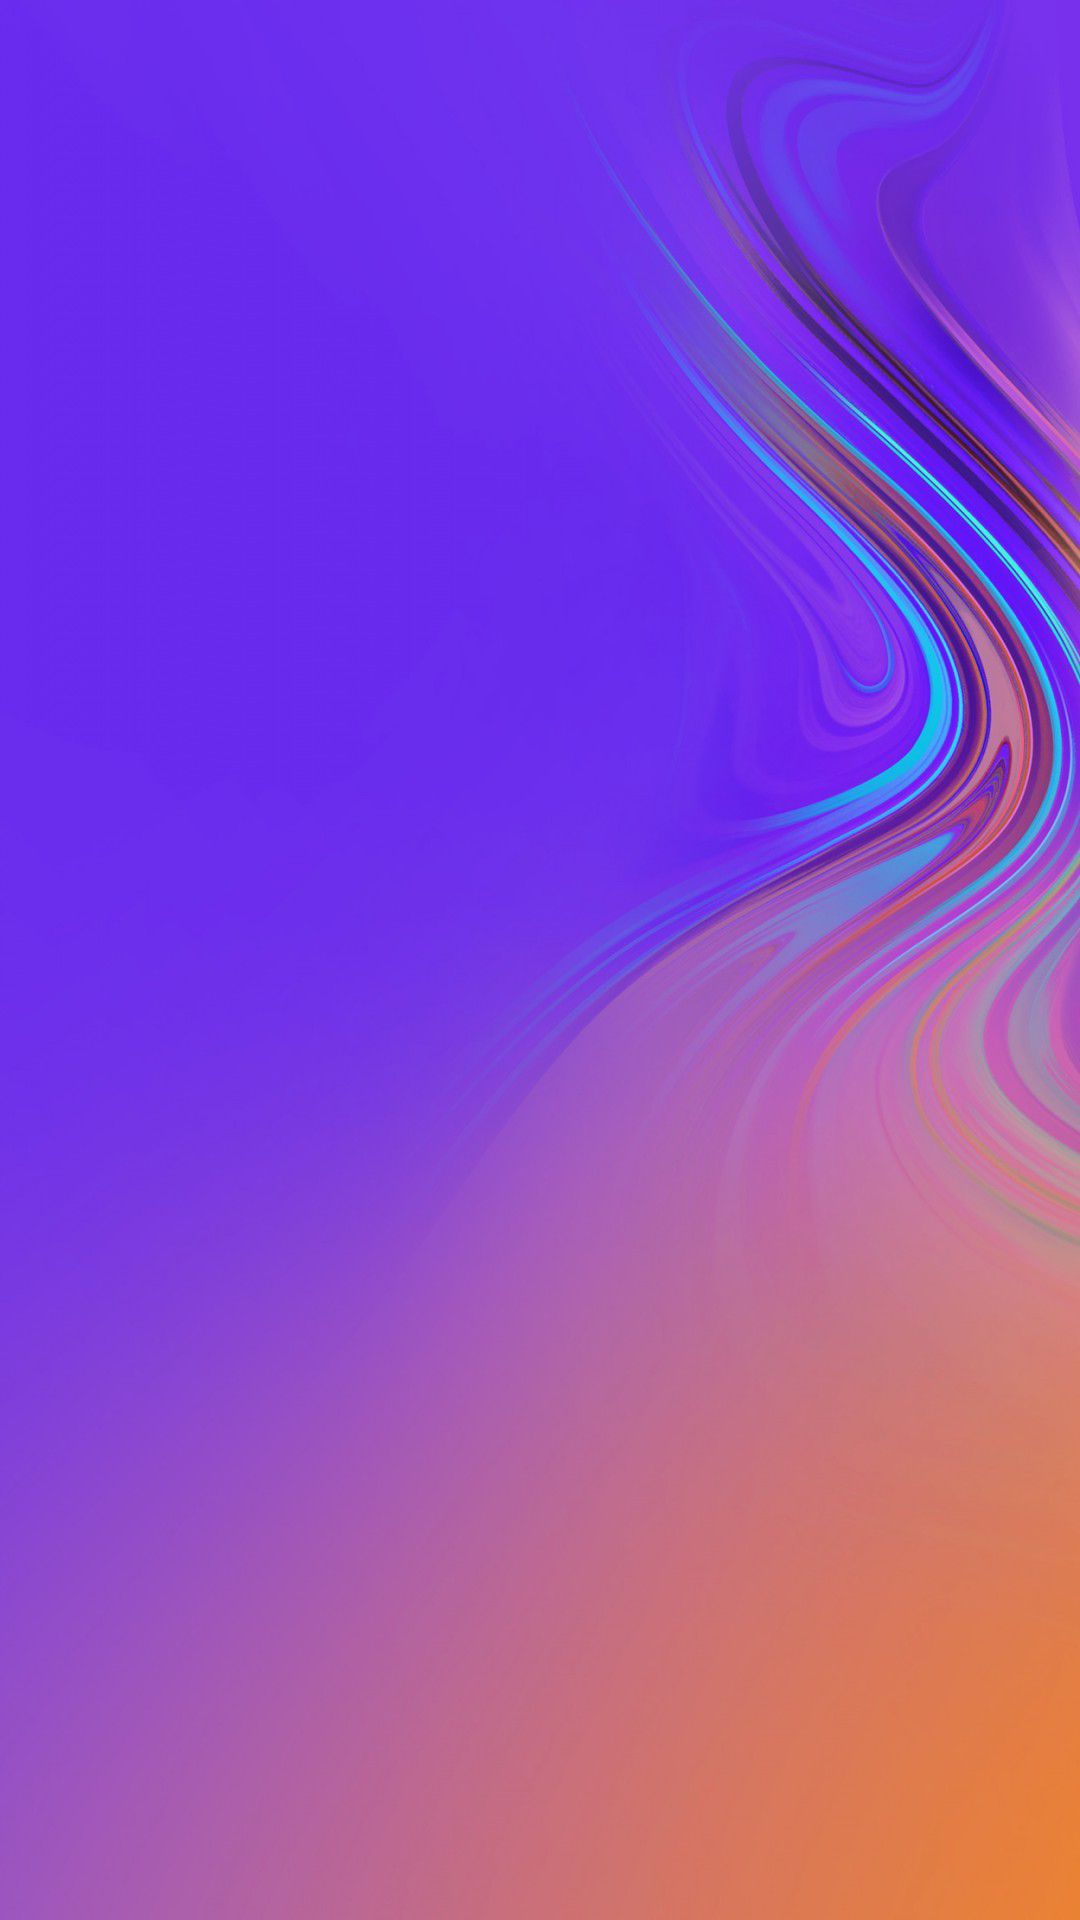 Wallpaper Samsung Galaxy A9 Samsung Galaxy A7 Android 8 0 Abstract Colorful Hd O Abstract Wallpaper Backgrounds Iphone Wallpaper Samsung Galaxy Wallpaper